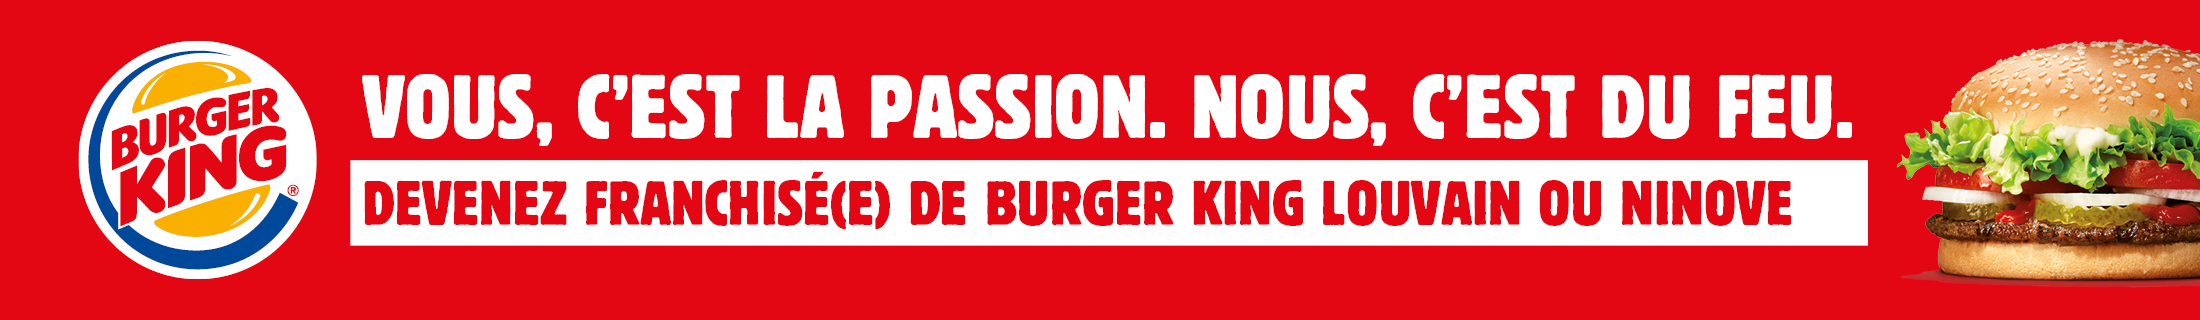 Burger King - Louvain / Ninove - 08/02-08/03/21